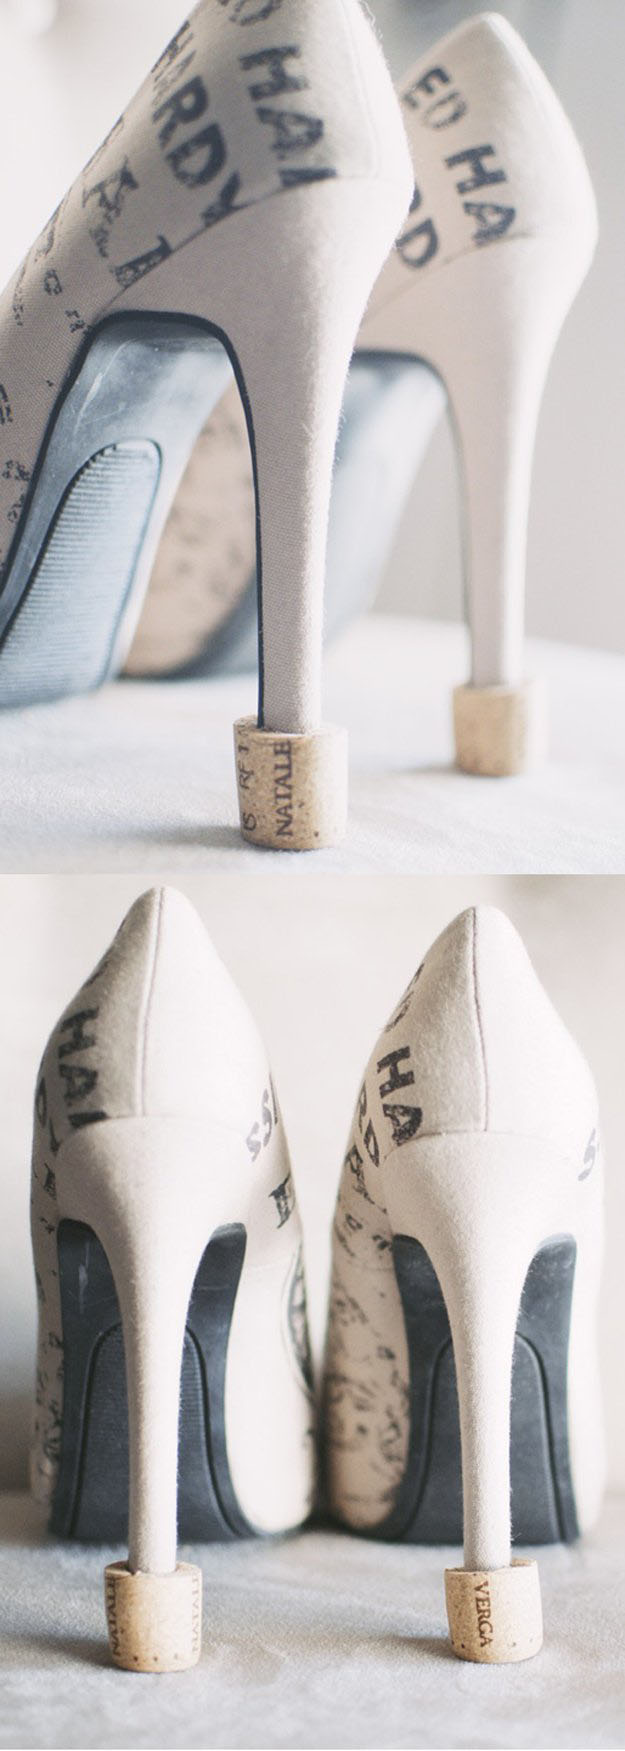 DIY Wine Cork Crafts for Easy Wedding Shoe Ideas - Wine Cork Shoe Savers - DIY Projects & Crafts by DIY JOY #crafts